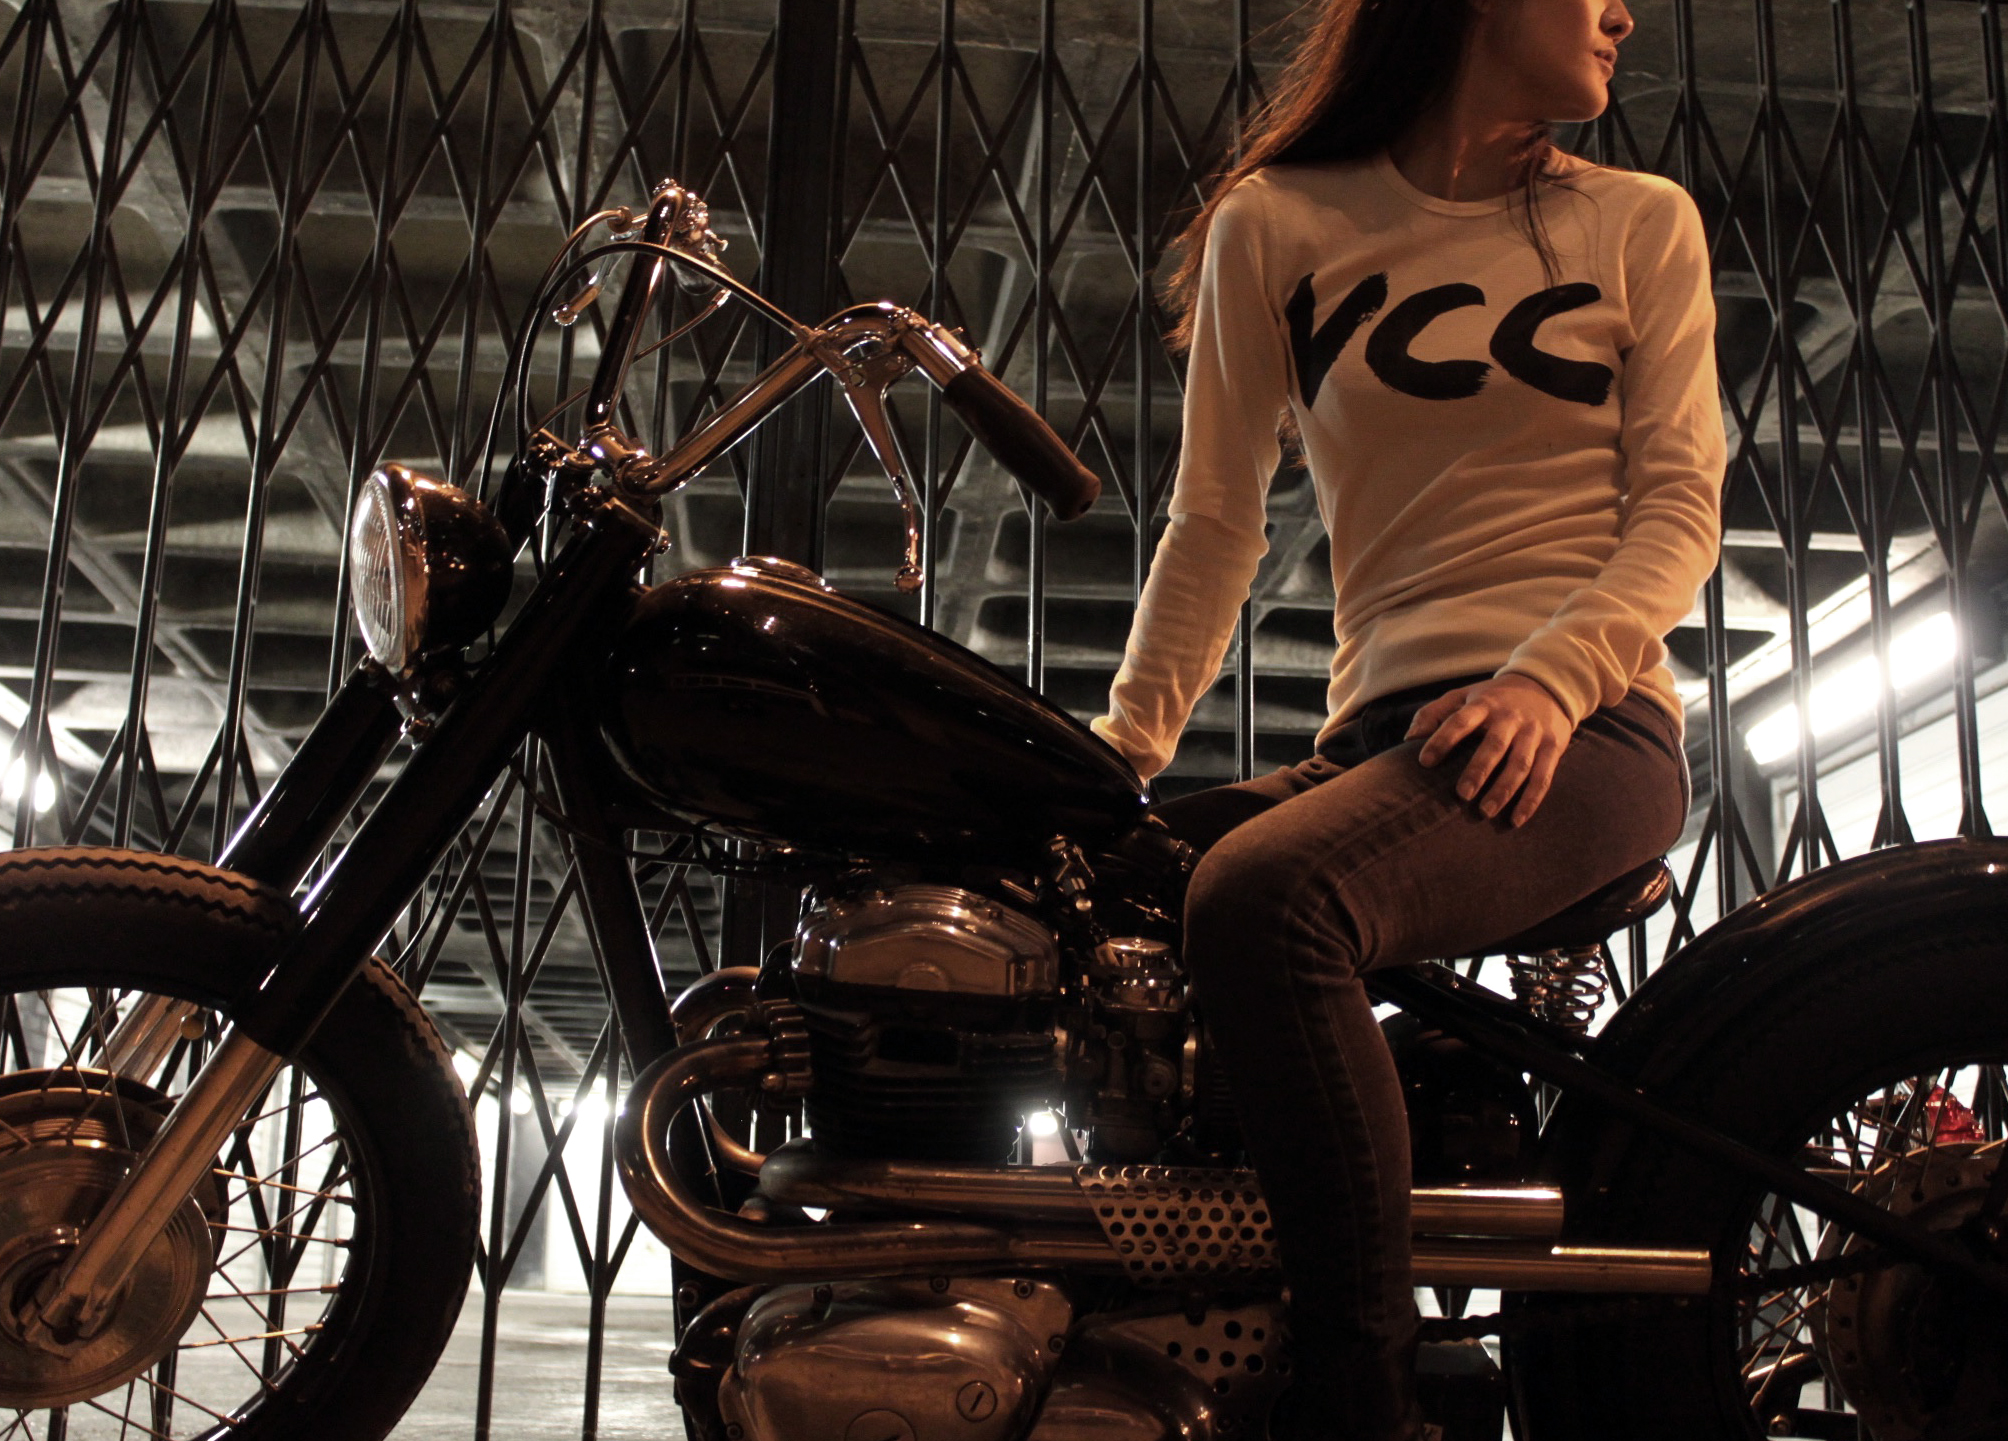 VCC printed logo thermal top